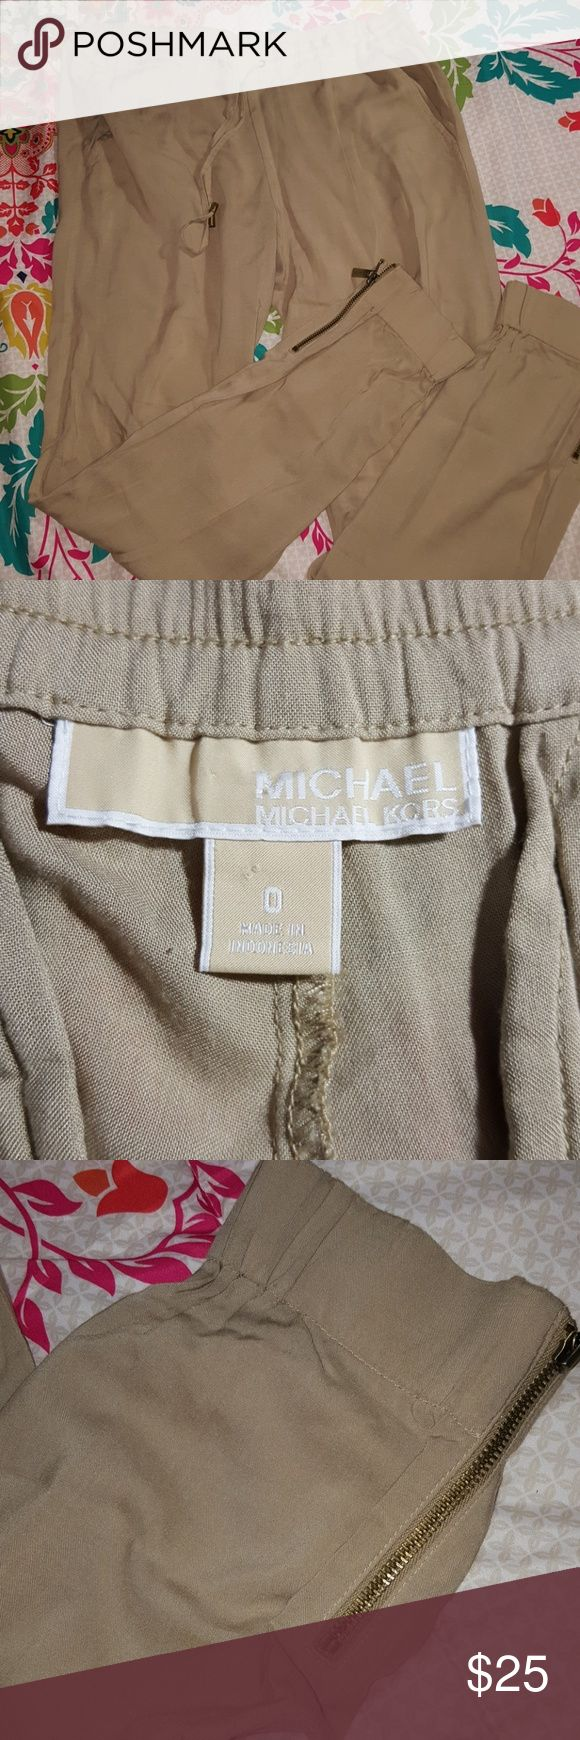 MICHAEL Michael Kors Dressy Joggers Brand: Michael Kors Size: 0 Color: Tan Style: Joggers With Zipper Ankle  Buyers can expect: Careful packaging, Fast shipping, & Delivery confirmation with each item purchased! PET FREE HOME & SMOKE-FREE HOME. MICHAEL Michael Kors Pants Track Pants & Joggers